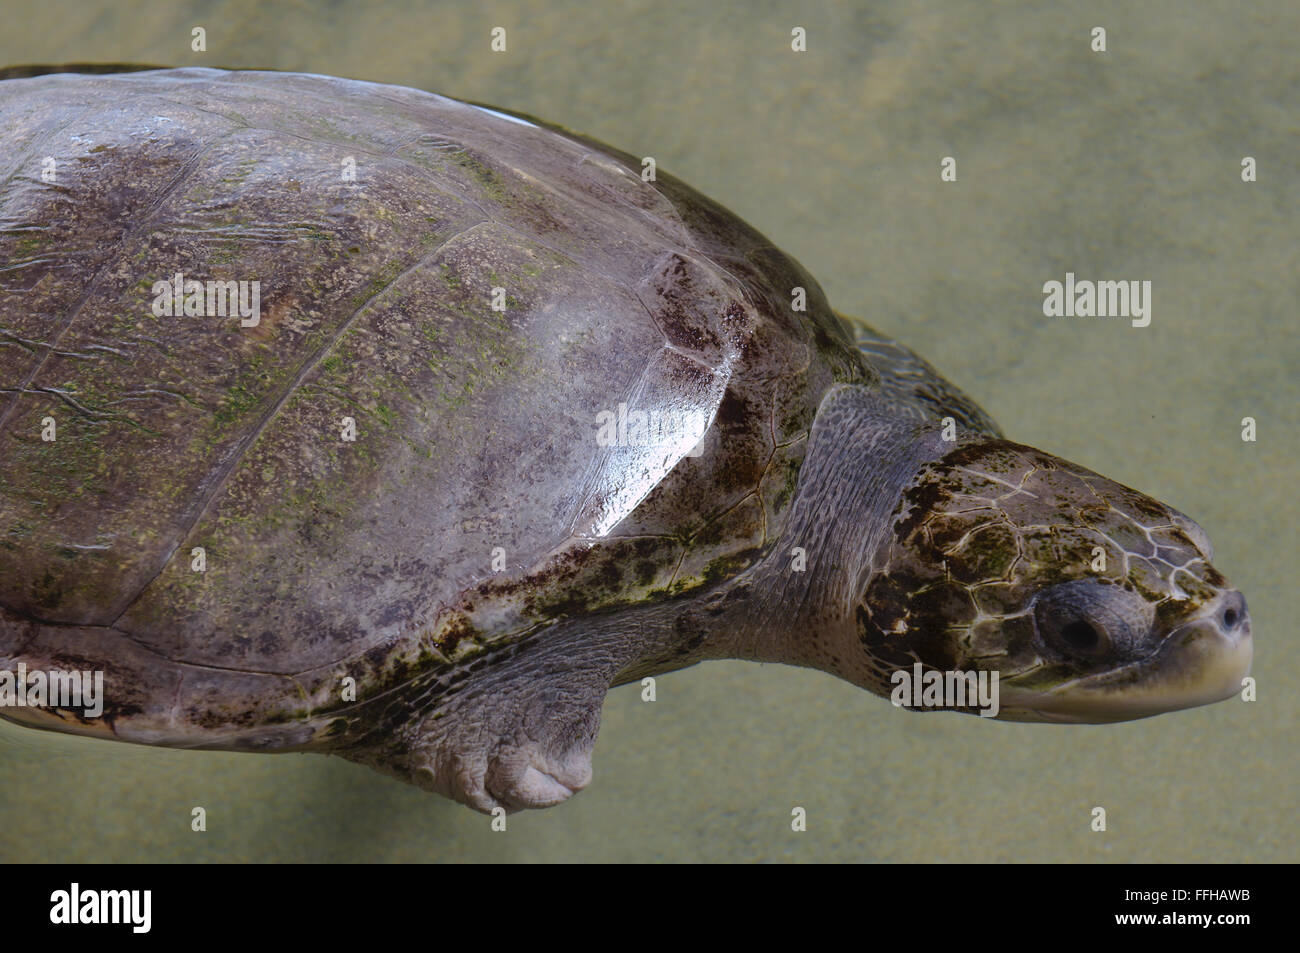 Pacific ridley sea turtle, olive ridley sea turtle or Olive Ridely (Lepidochelys olivacea) - Stock Image